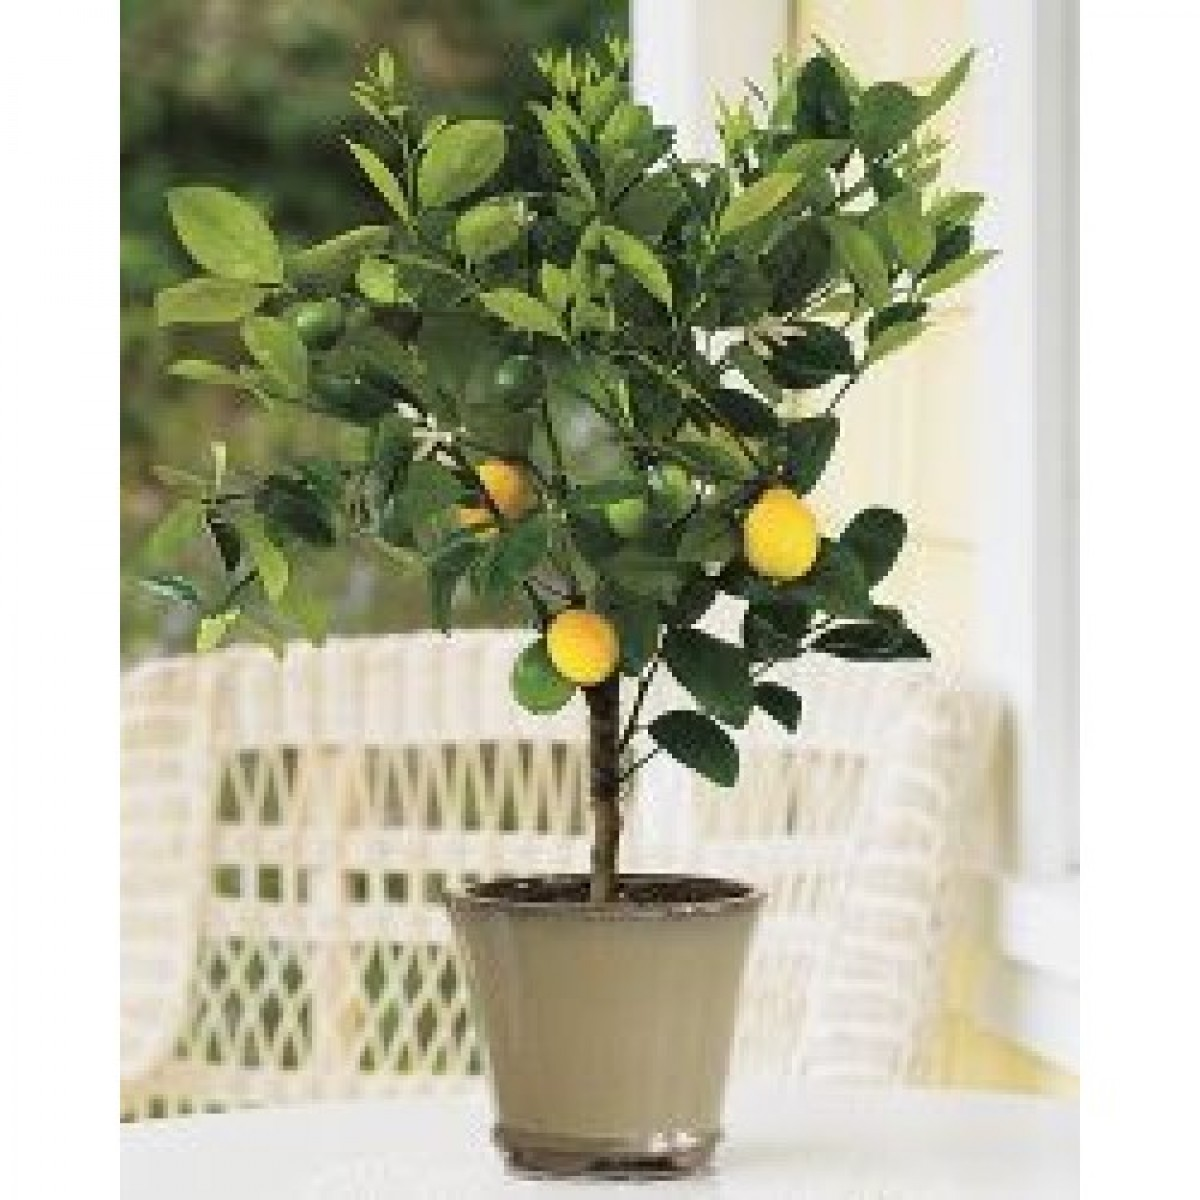 Meyer Lemon Tree 3 4 Year Old Lemoncitrustree